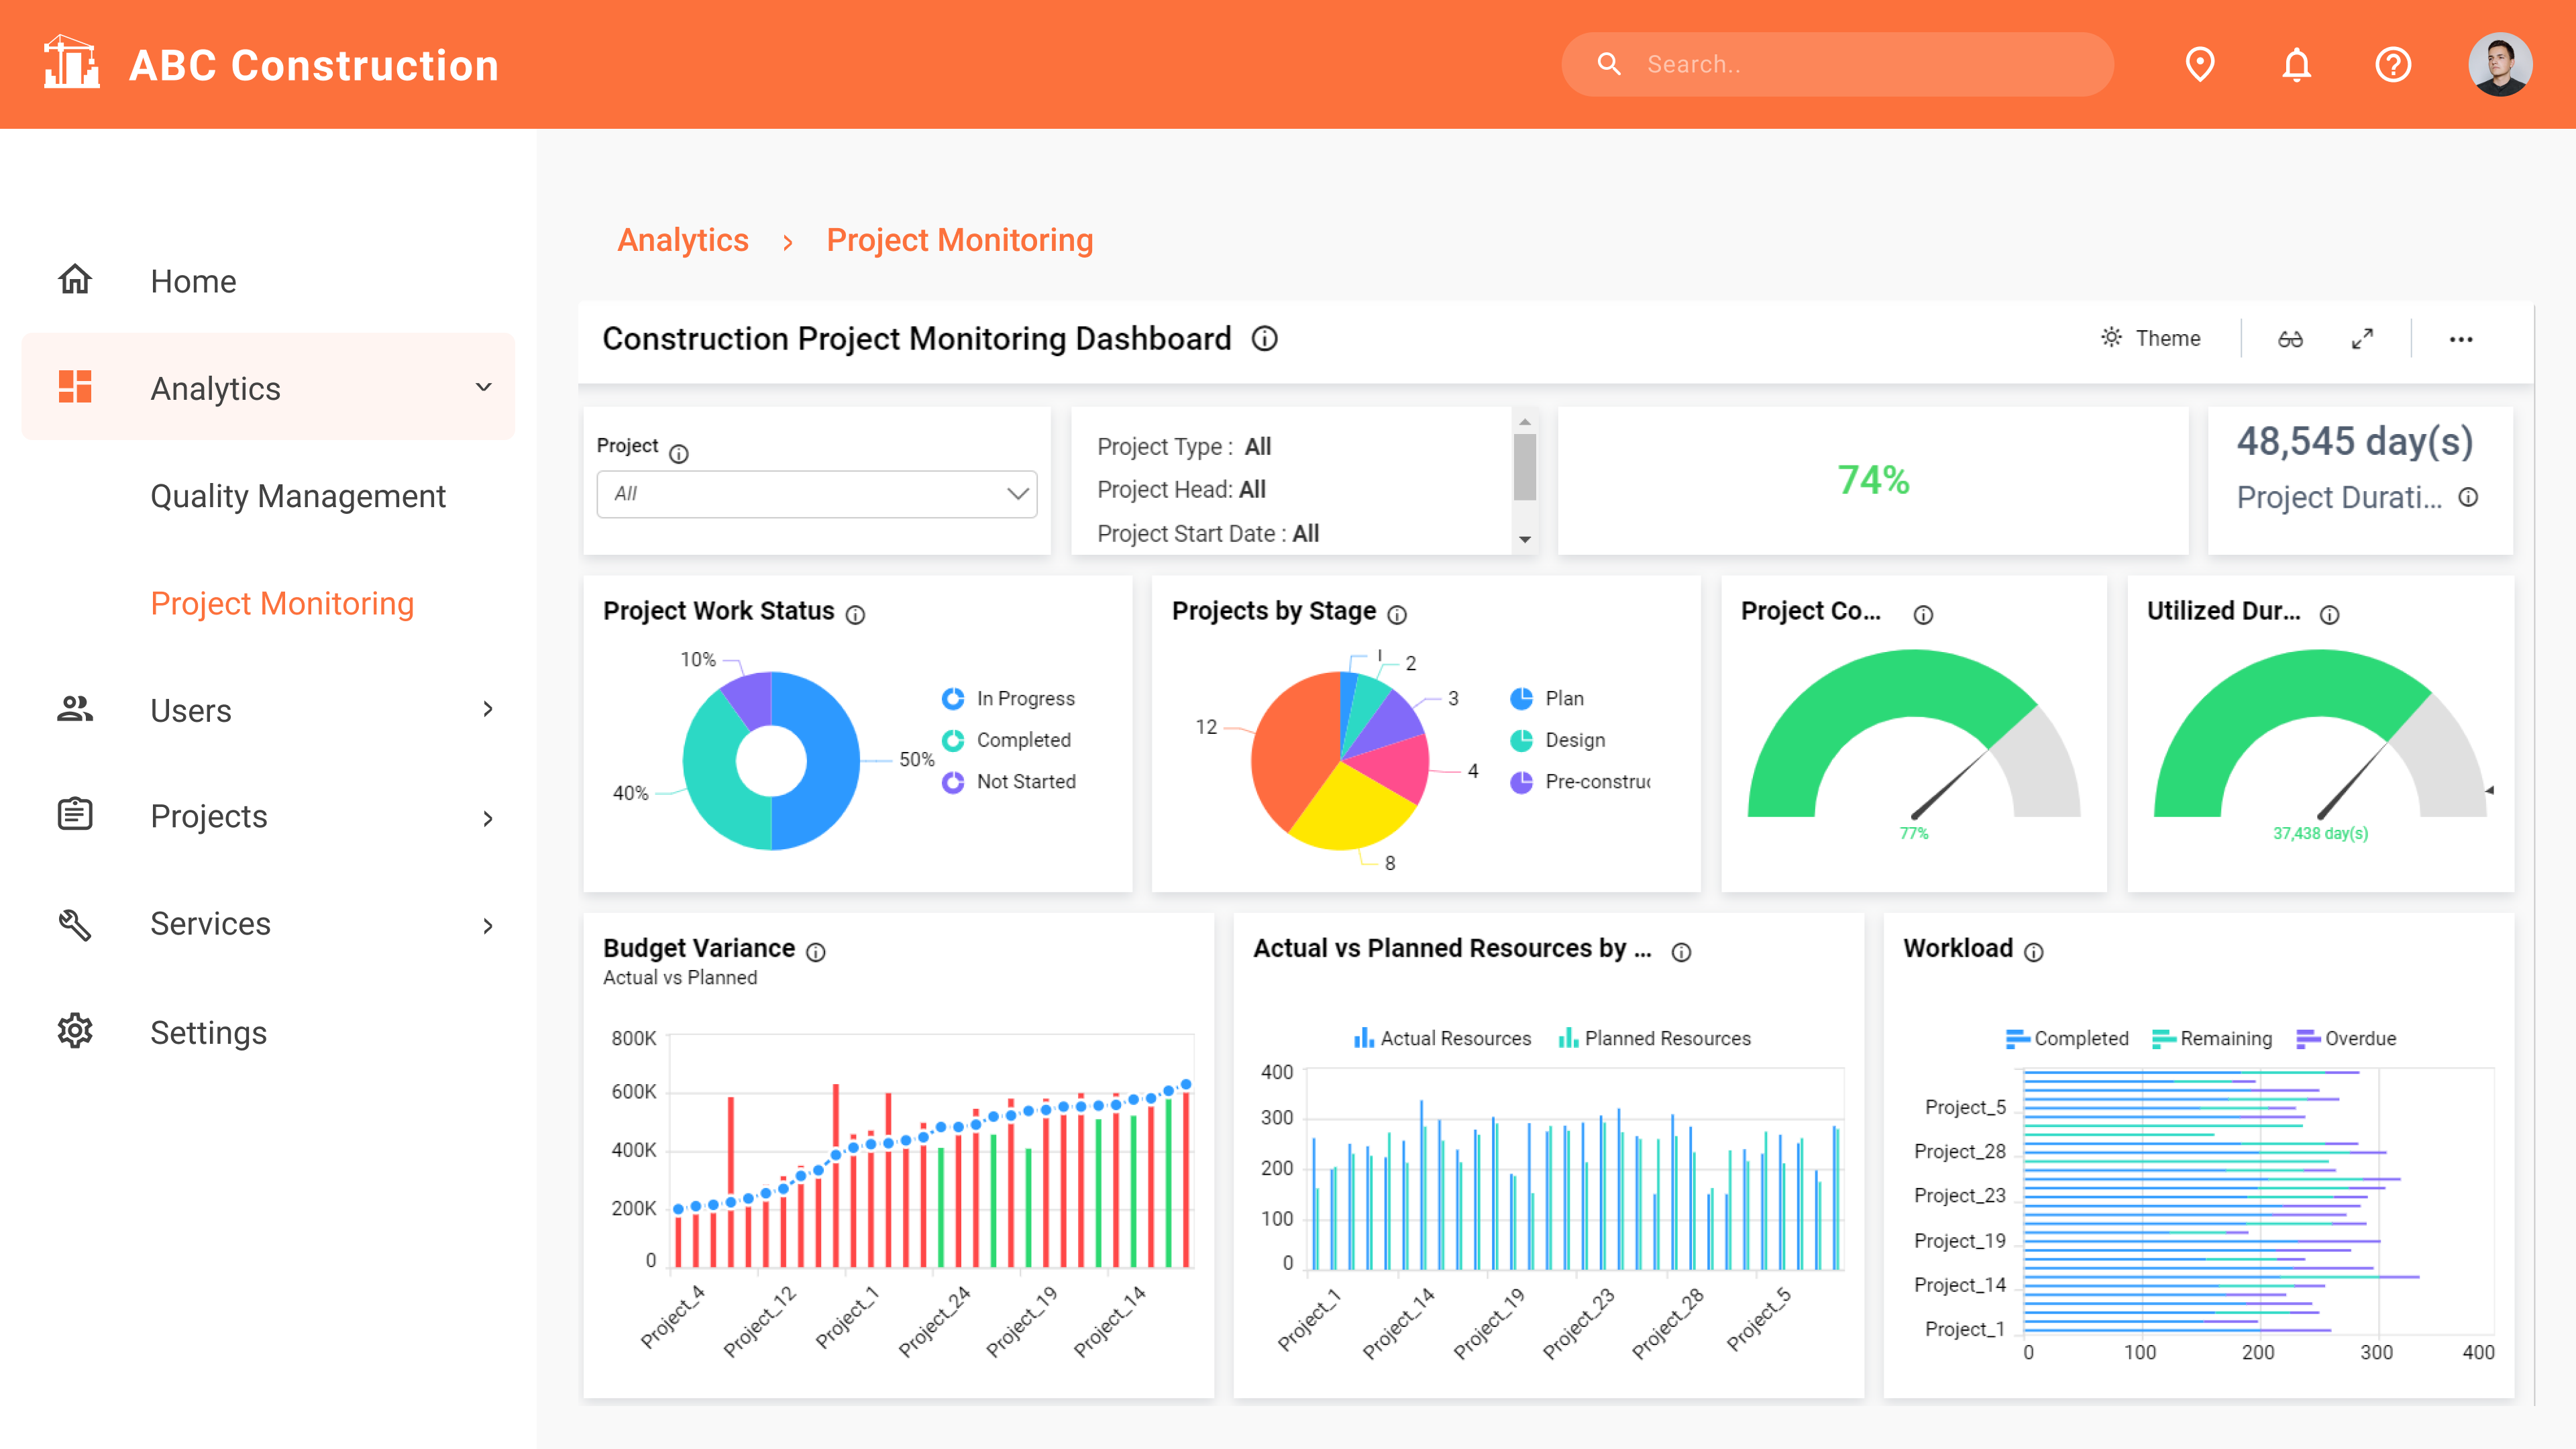 Construction Project Monitoring Dashboard Embedded into ASP.NET Core Application